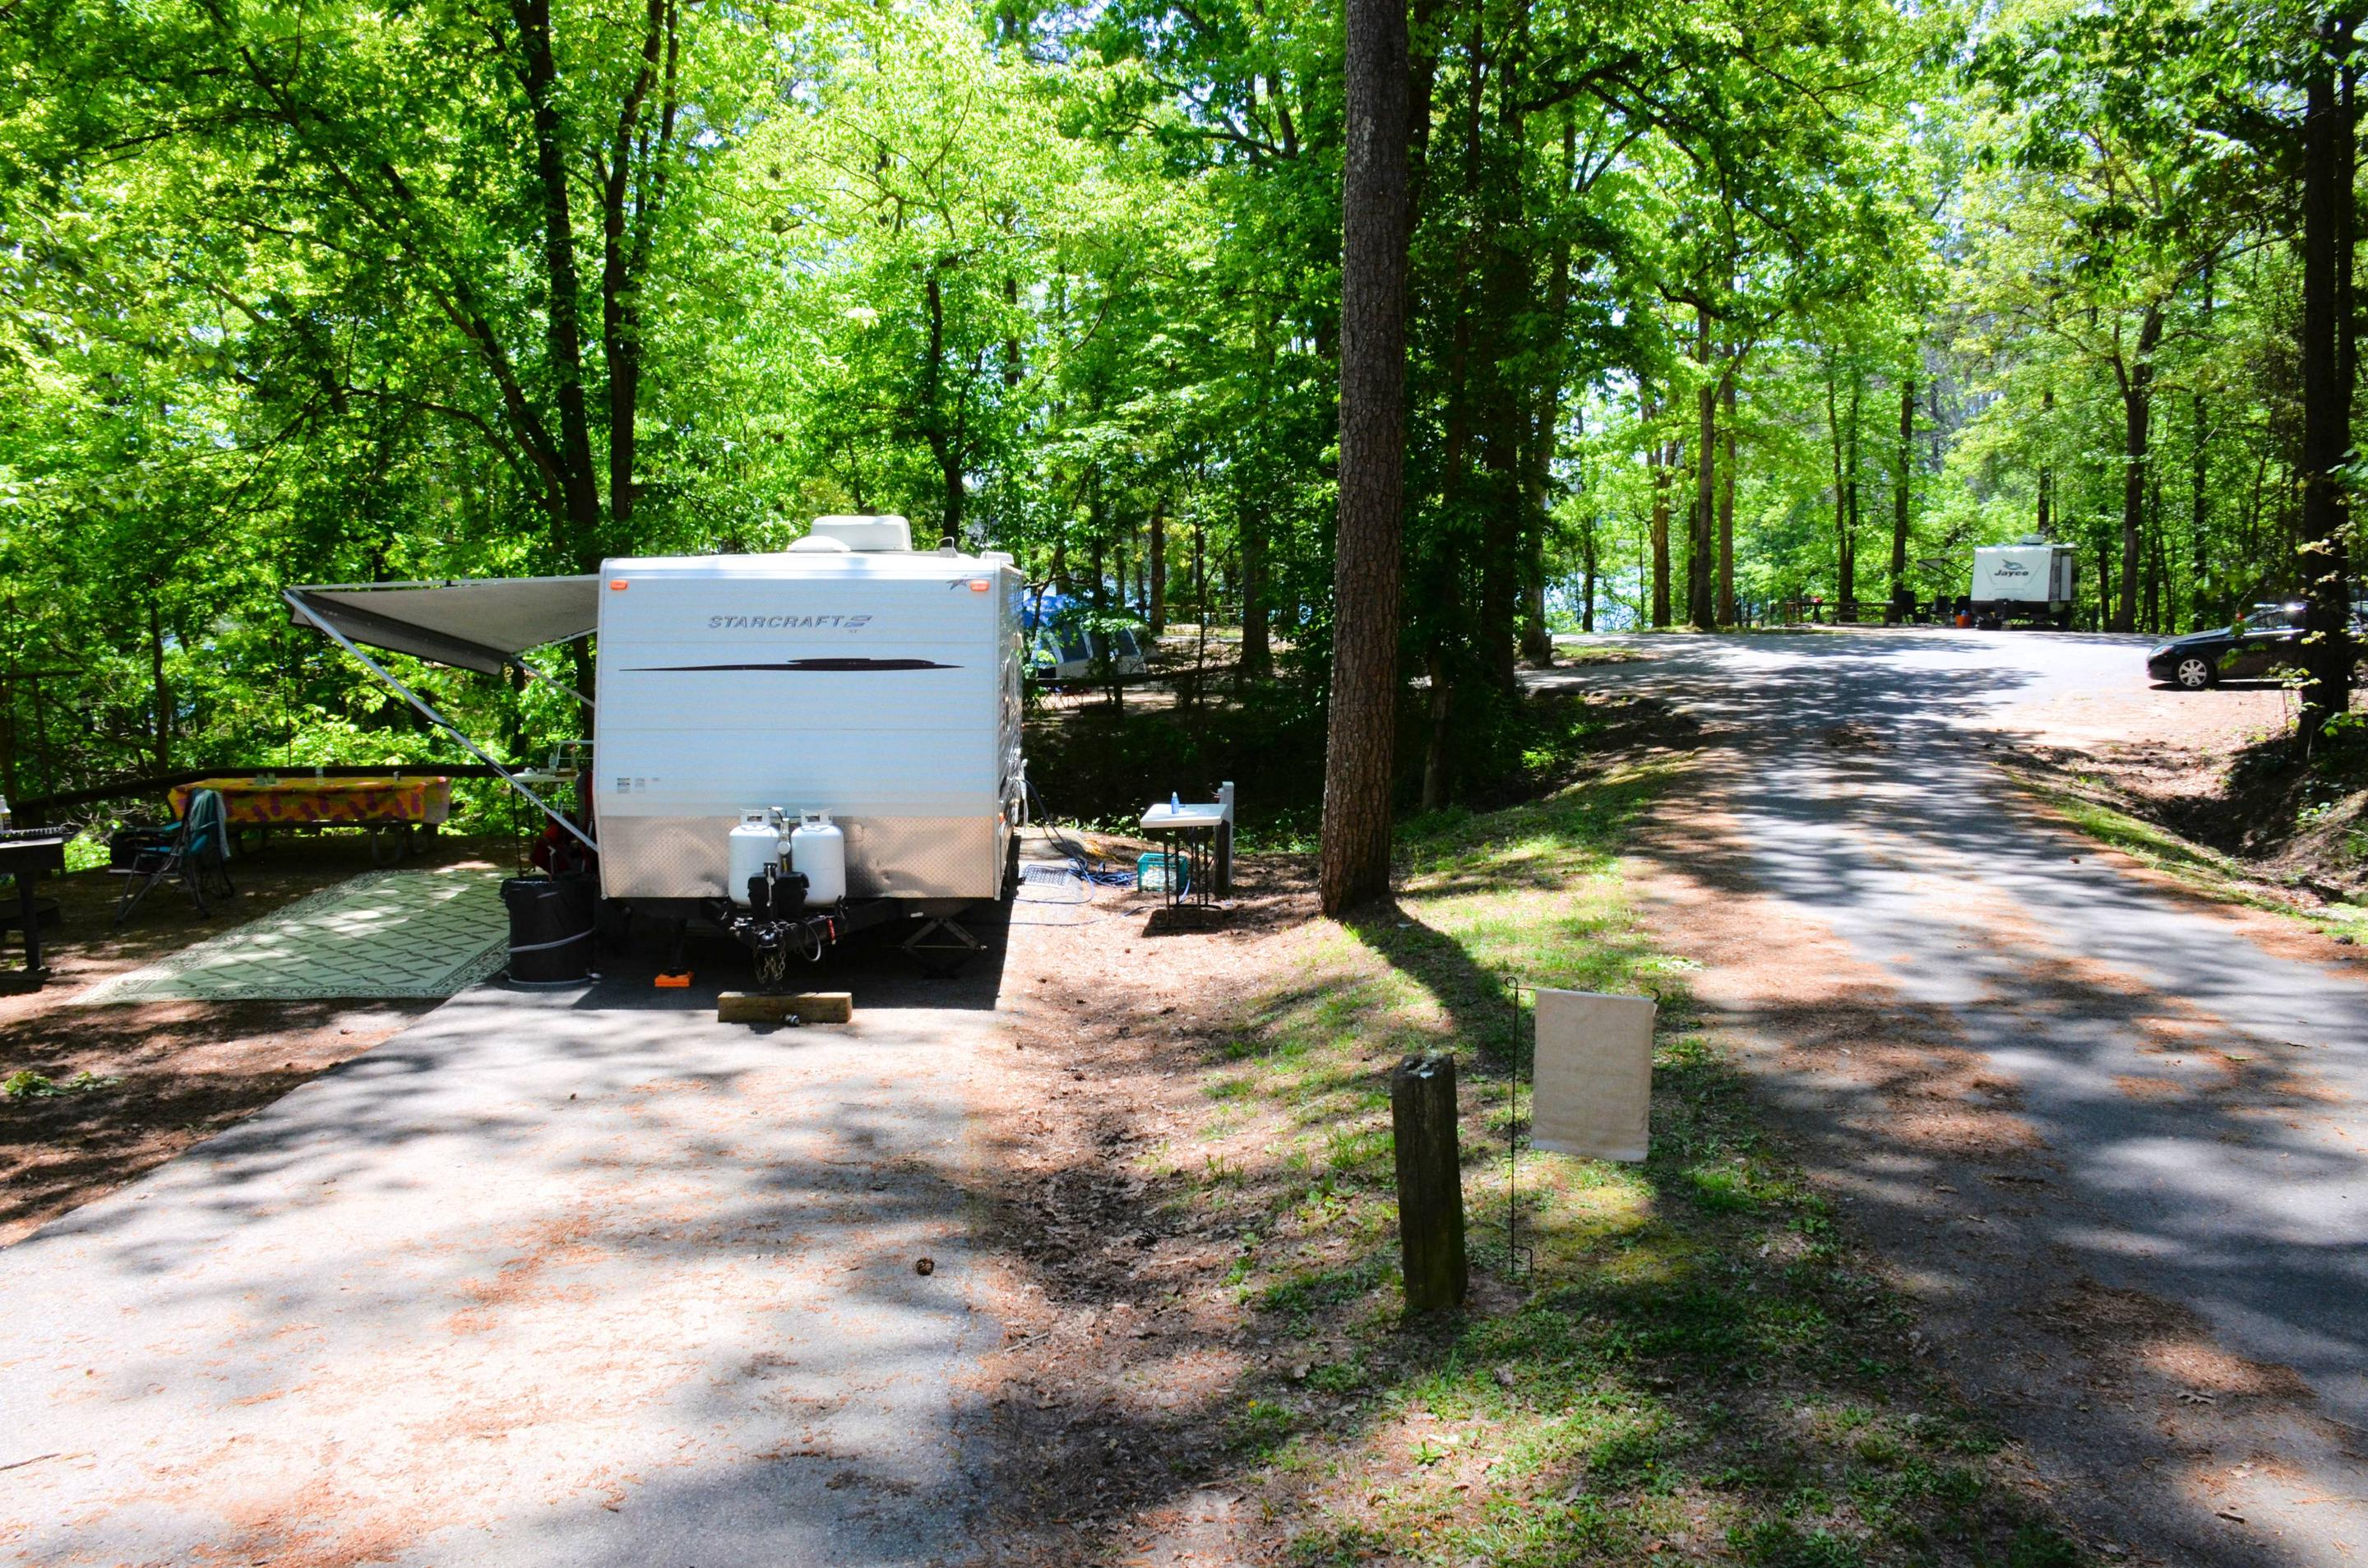 Driveway entrance angle/slope, utilities-side clearance.McKinney Campground, campsite 147.